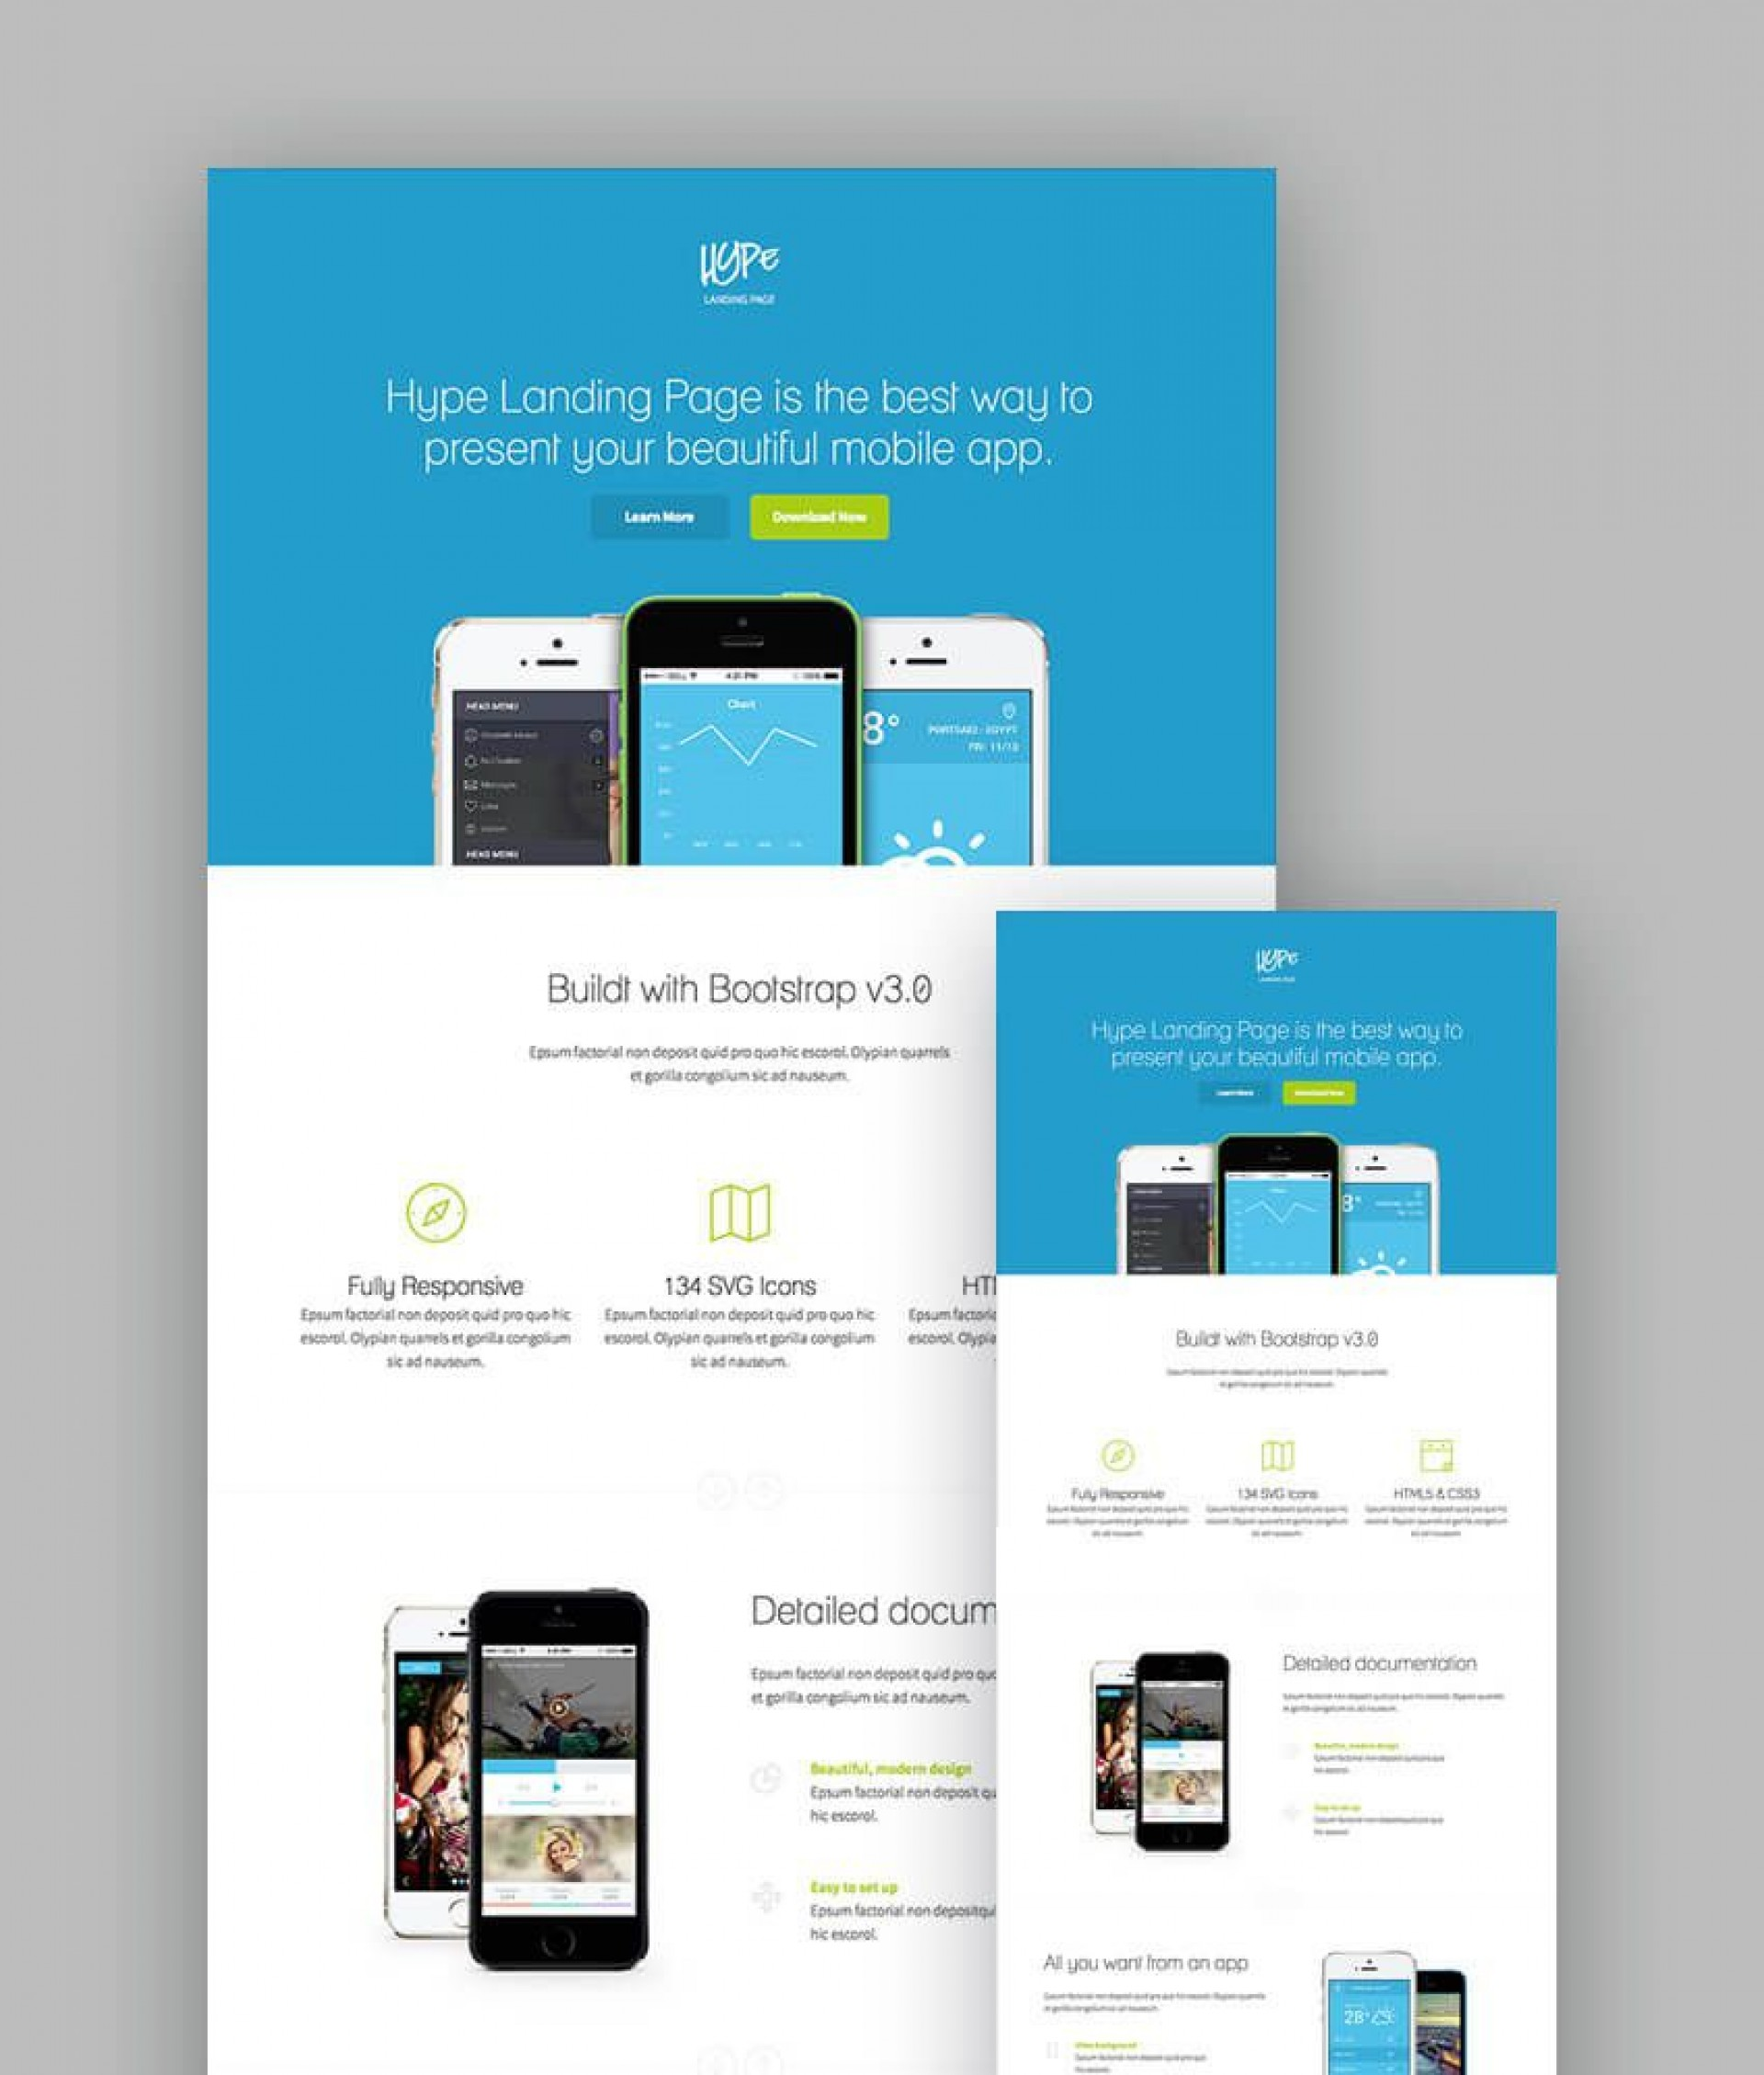 003 Stunning Responsive Landing Page Template High Definition  Templates Marketo Free Pardot Html5 Download1920